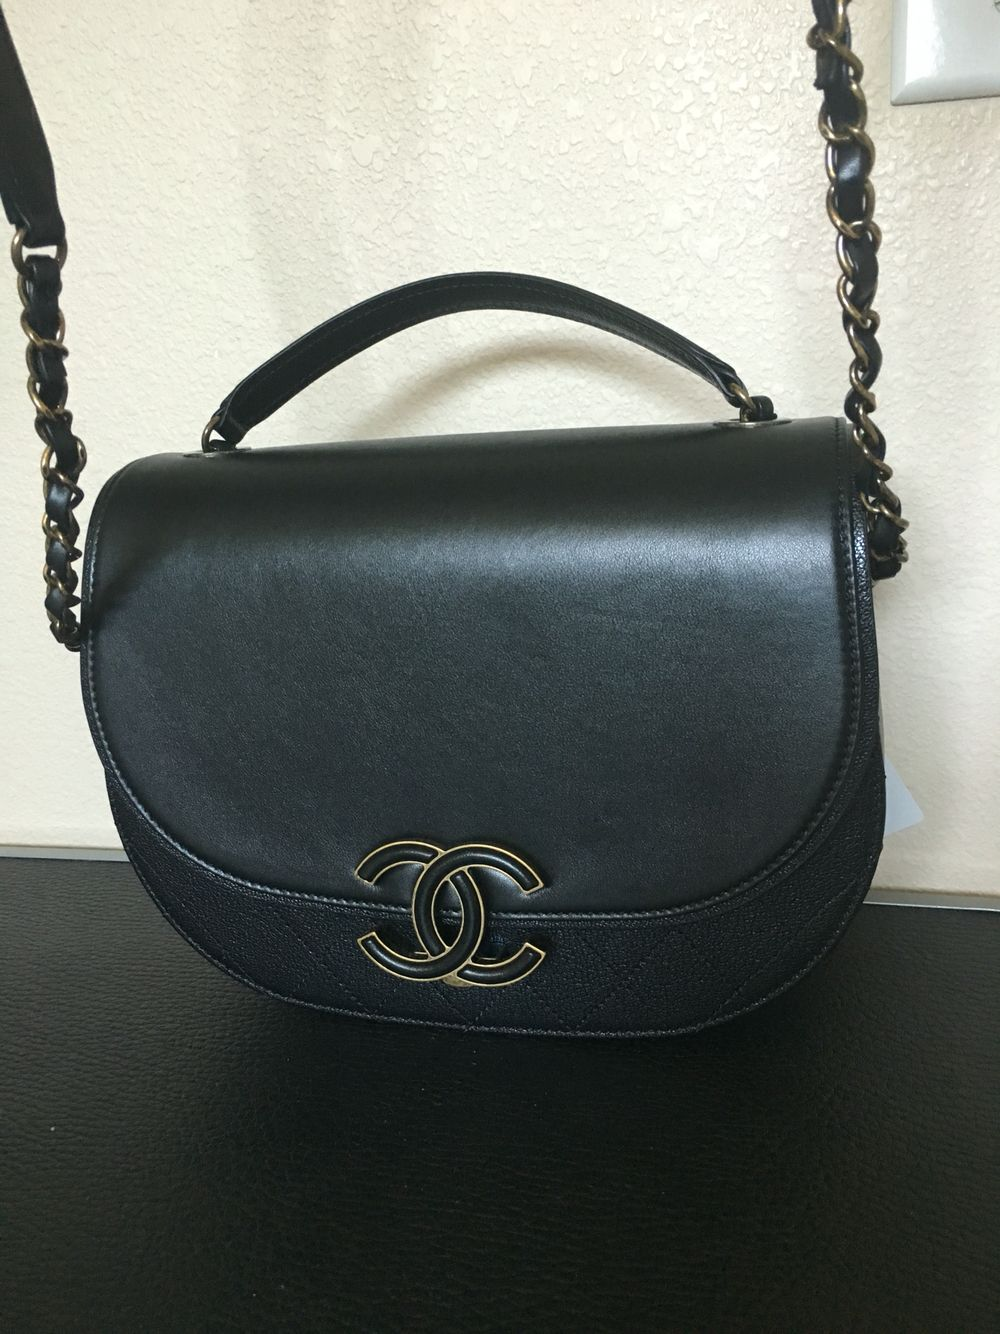 815b76d0c505a4 2016 Fall Winter Collection! Chanel coco curve messenger bag ...